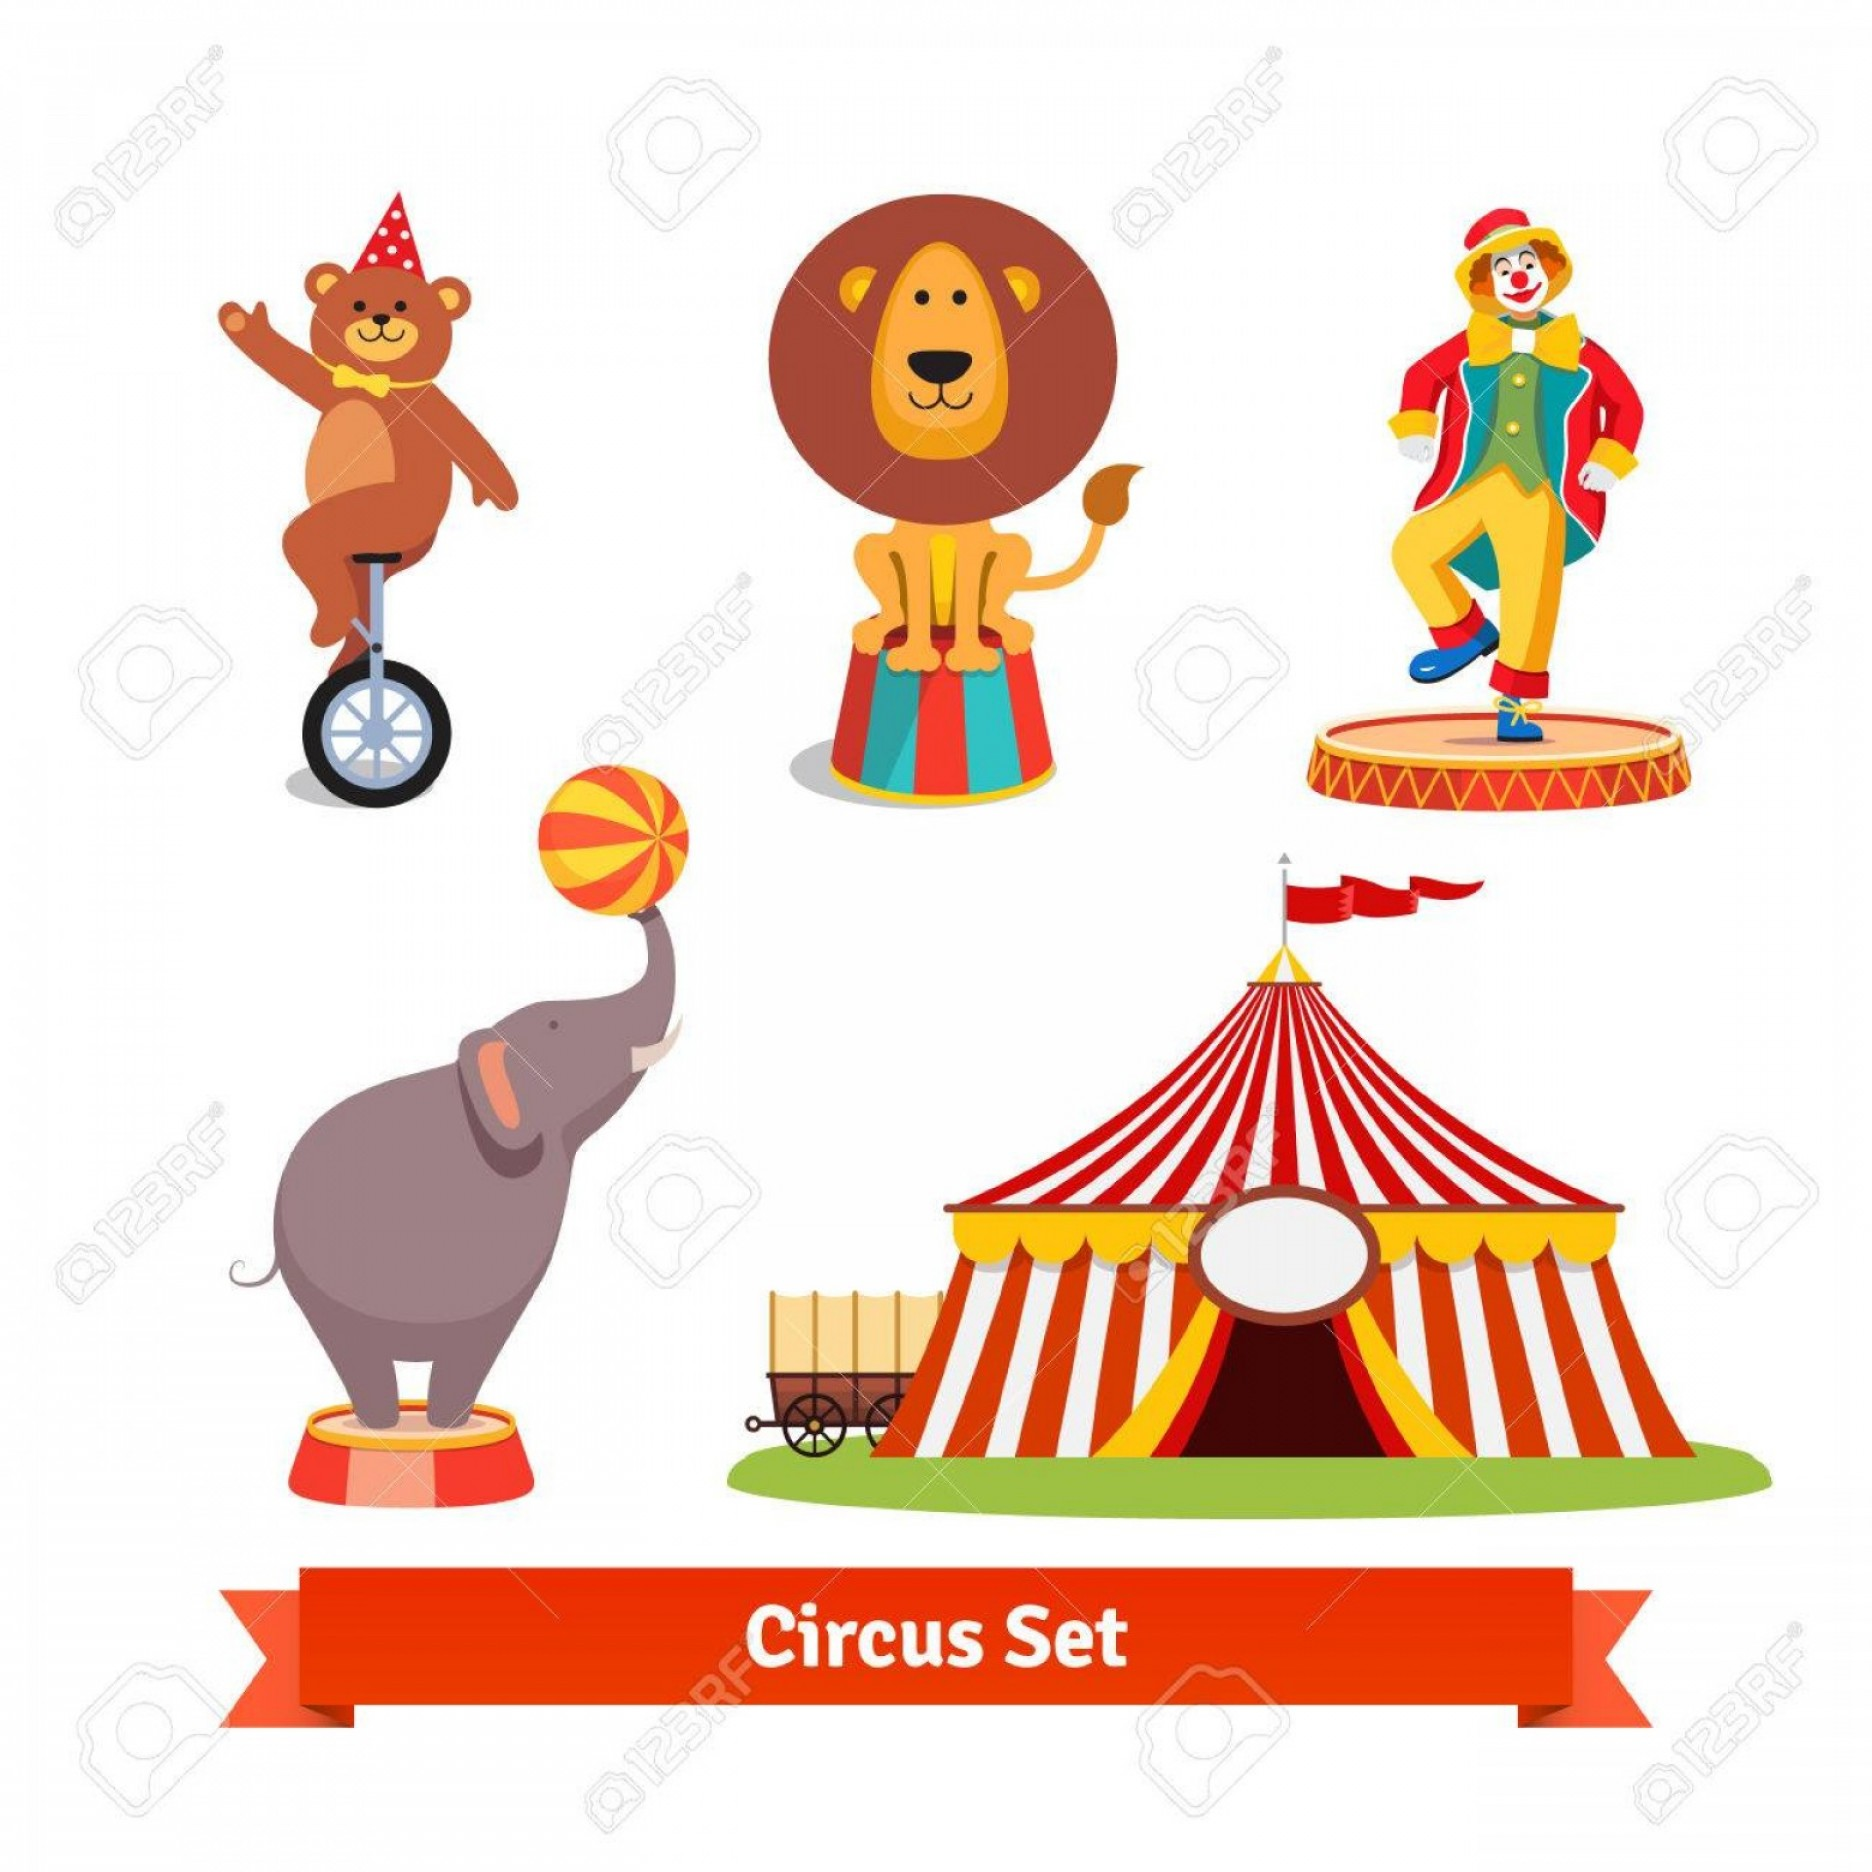 Circus Animals Vector Graphic: Photostock Vector Circus Animals Bear On Monocycle In Party Hat Lion Elephant Holding Ball On A Trunk Clown And Tent W